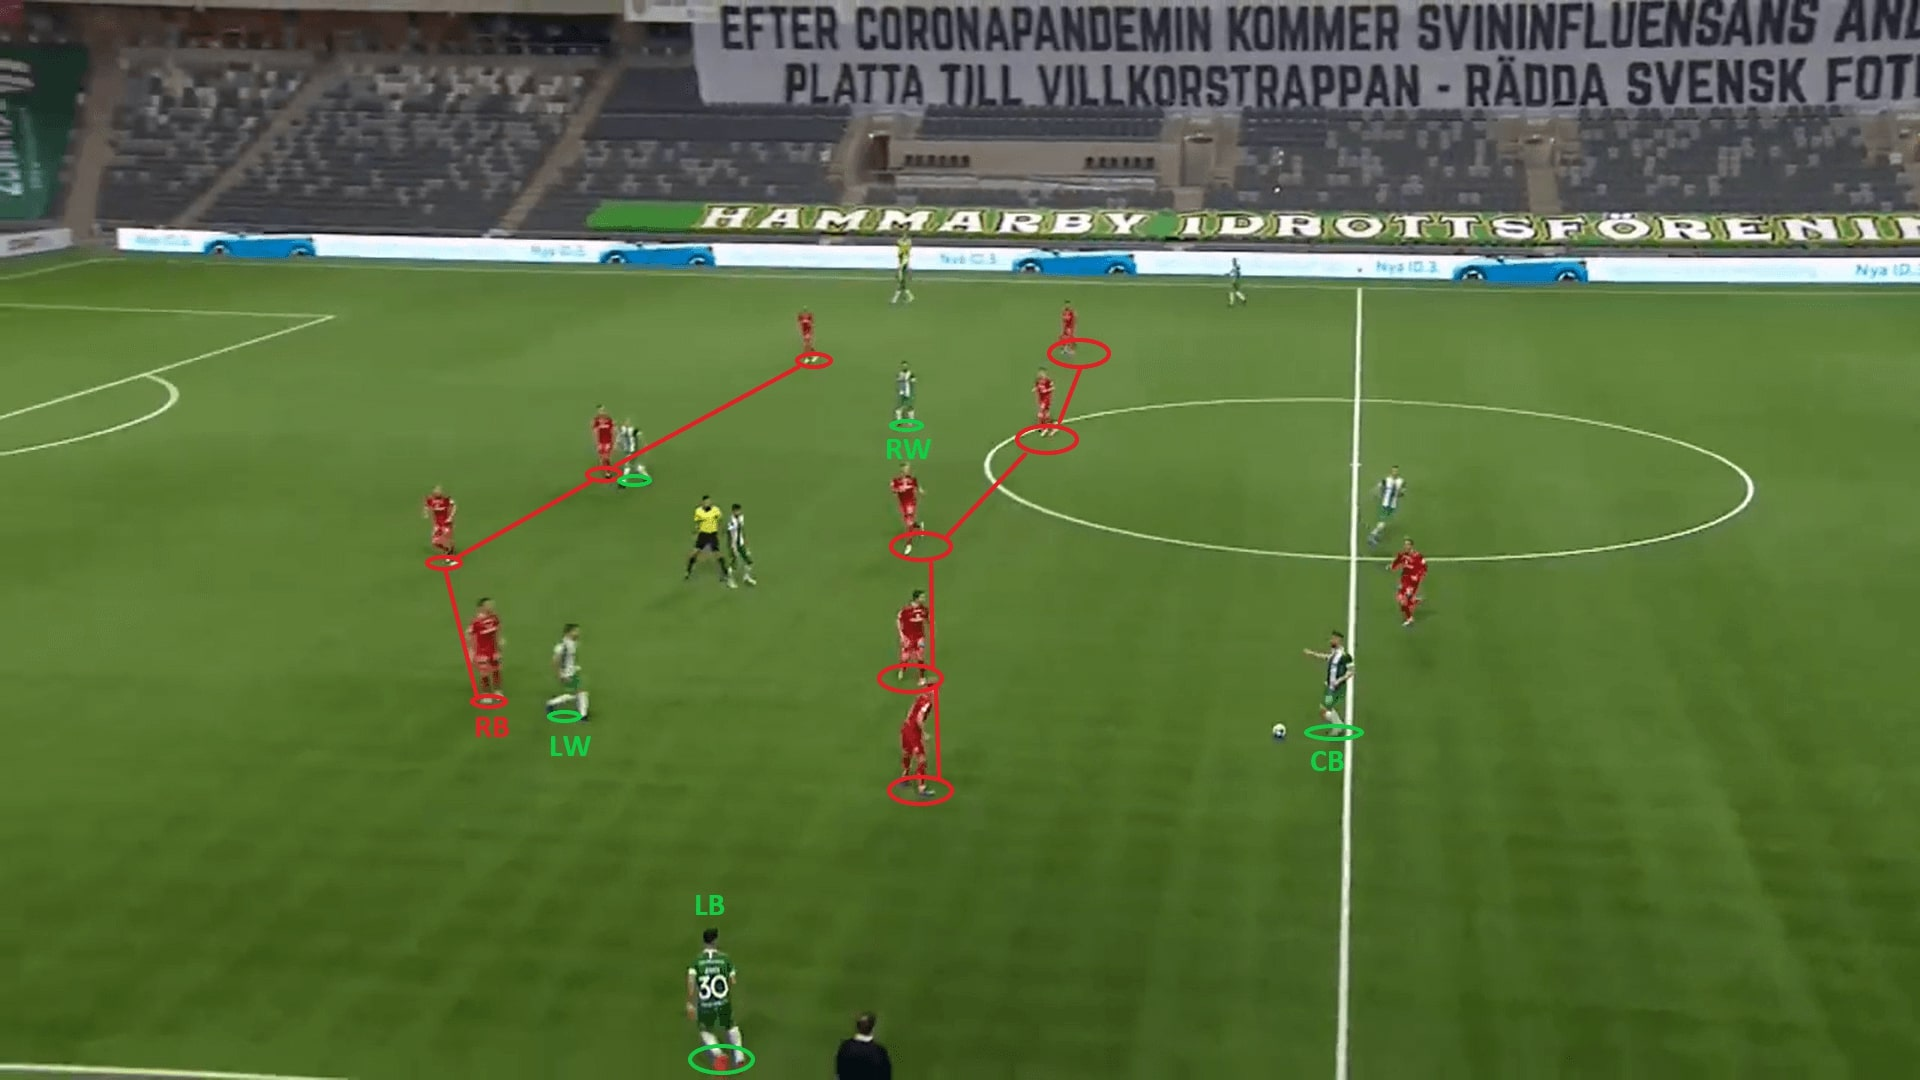 Allsvenskan 2020: Hammarby IF vs IFK Norrkoping - tactical analysis - tactics